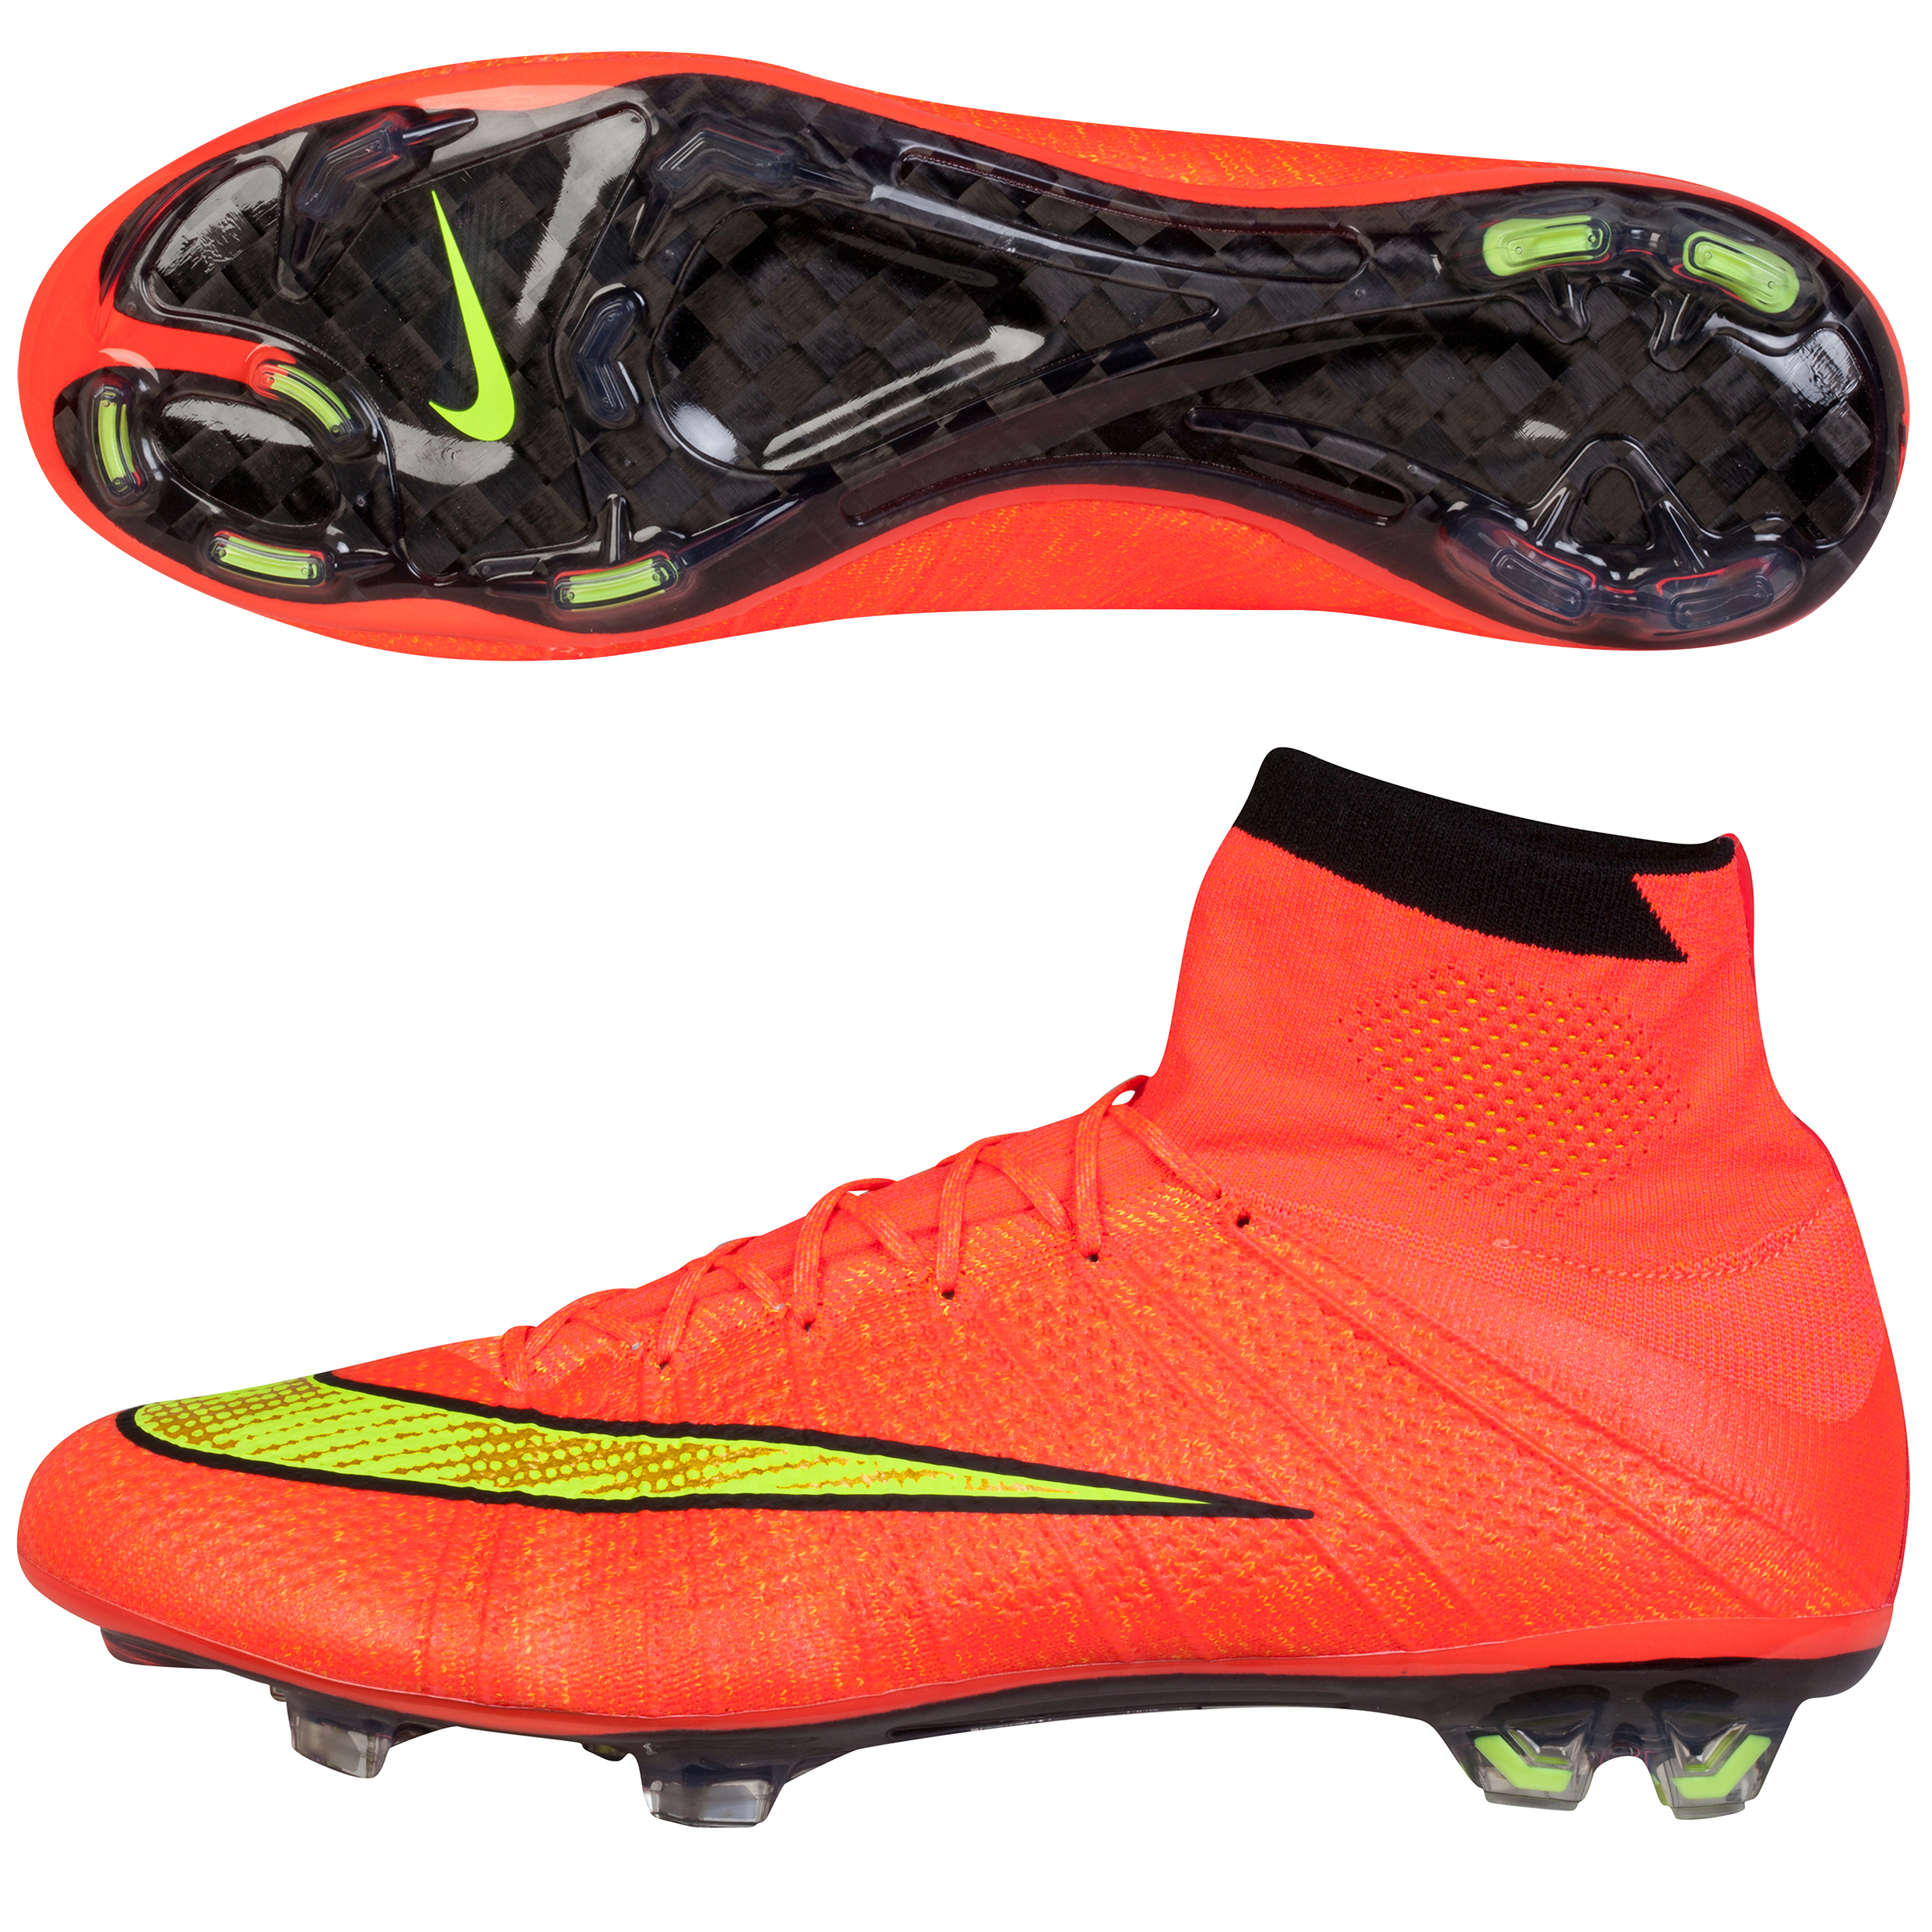 Nike Mercurial Superfly Firm Ground Football Boots Pink